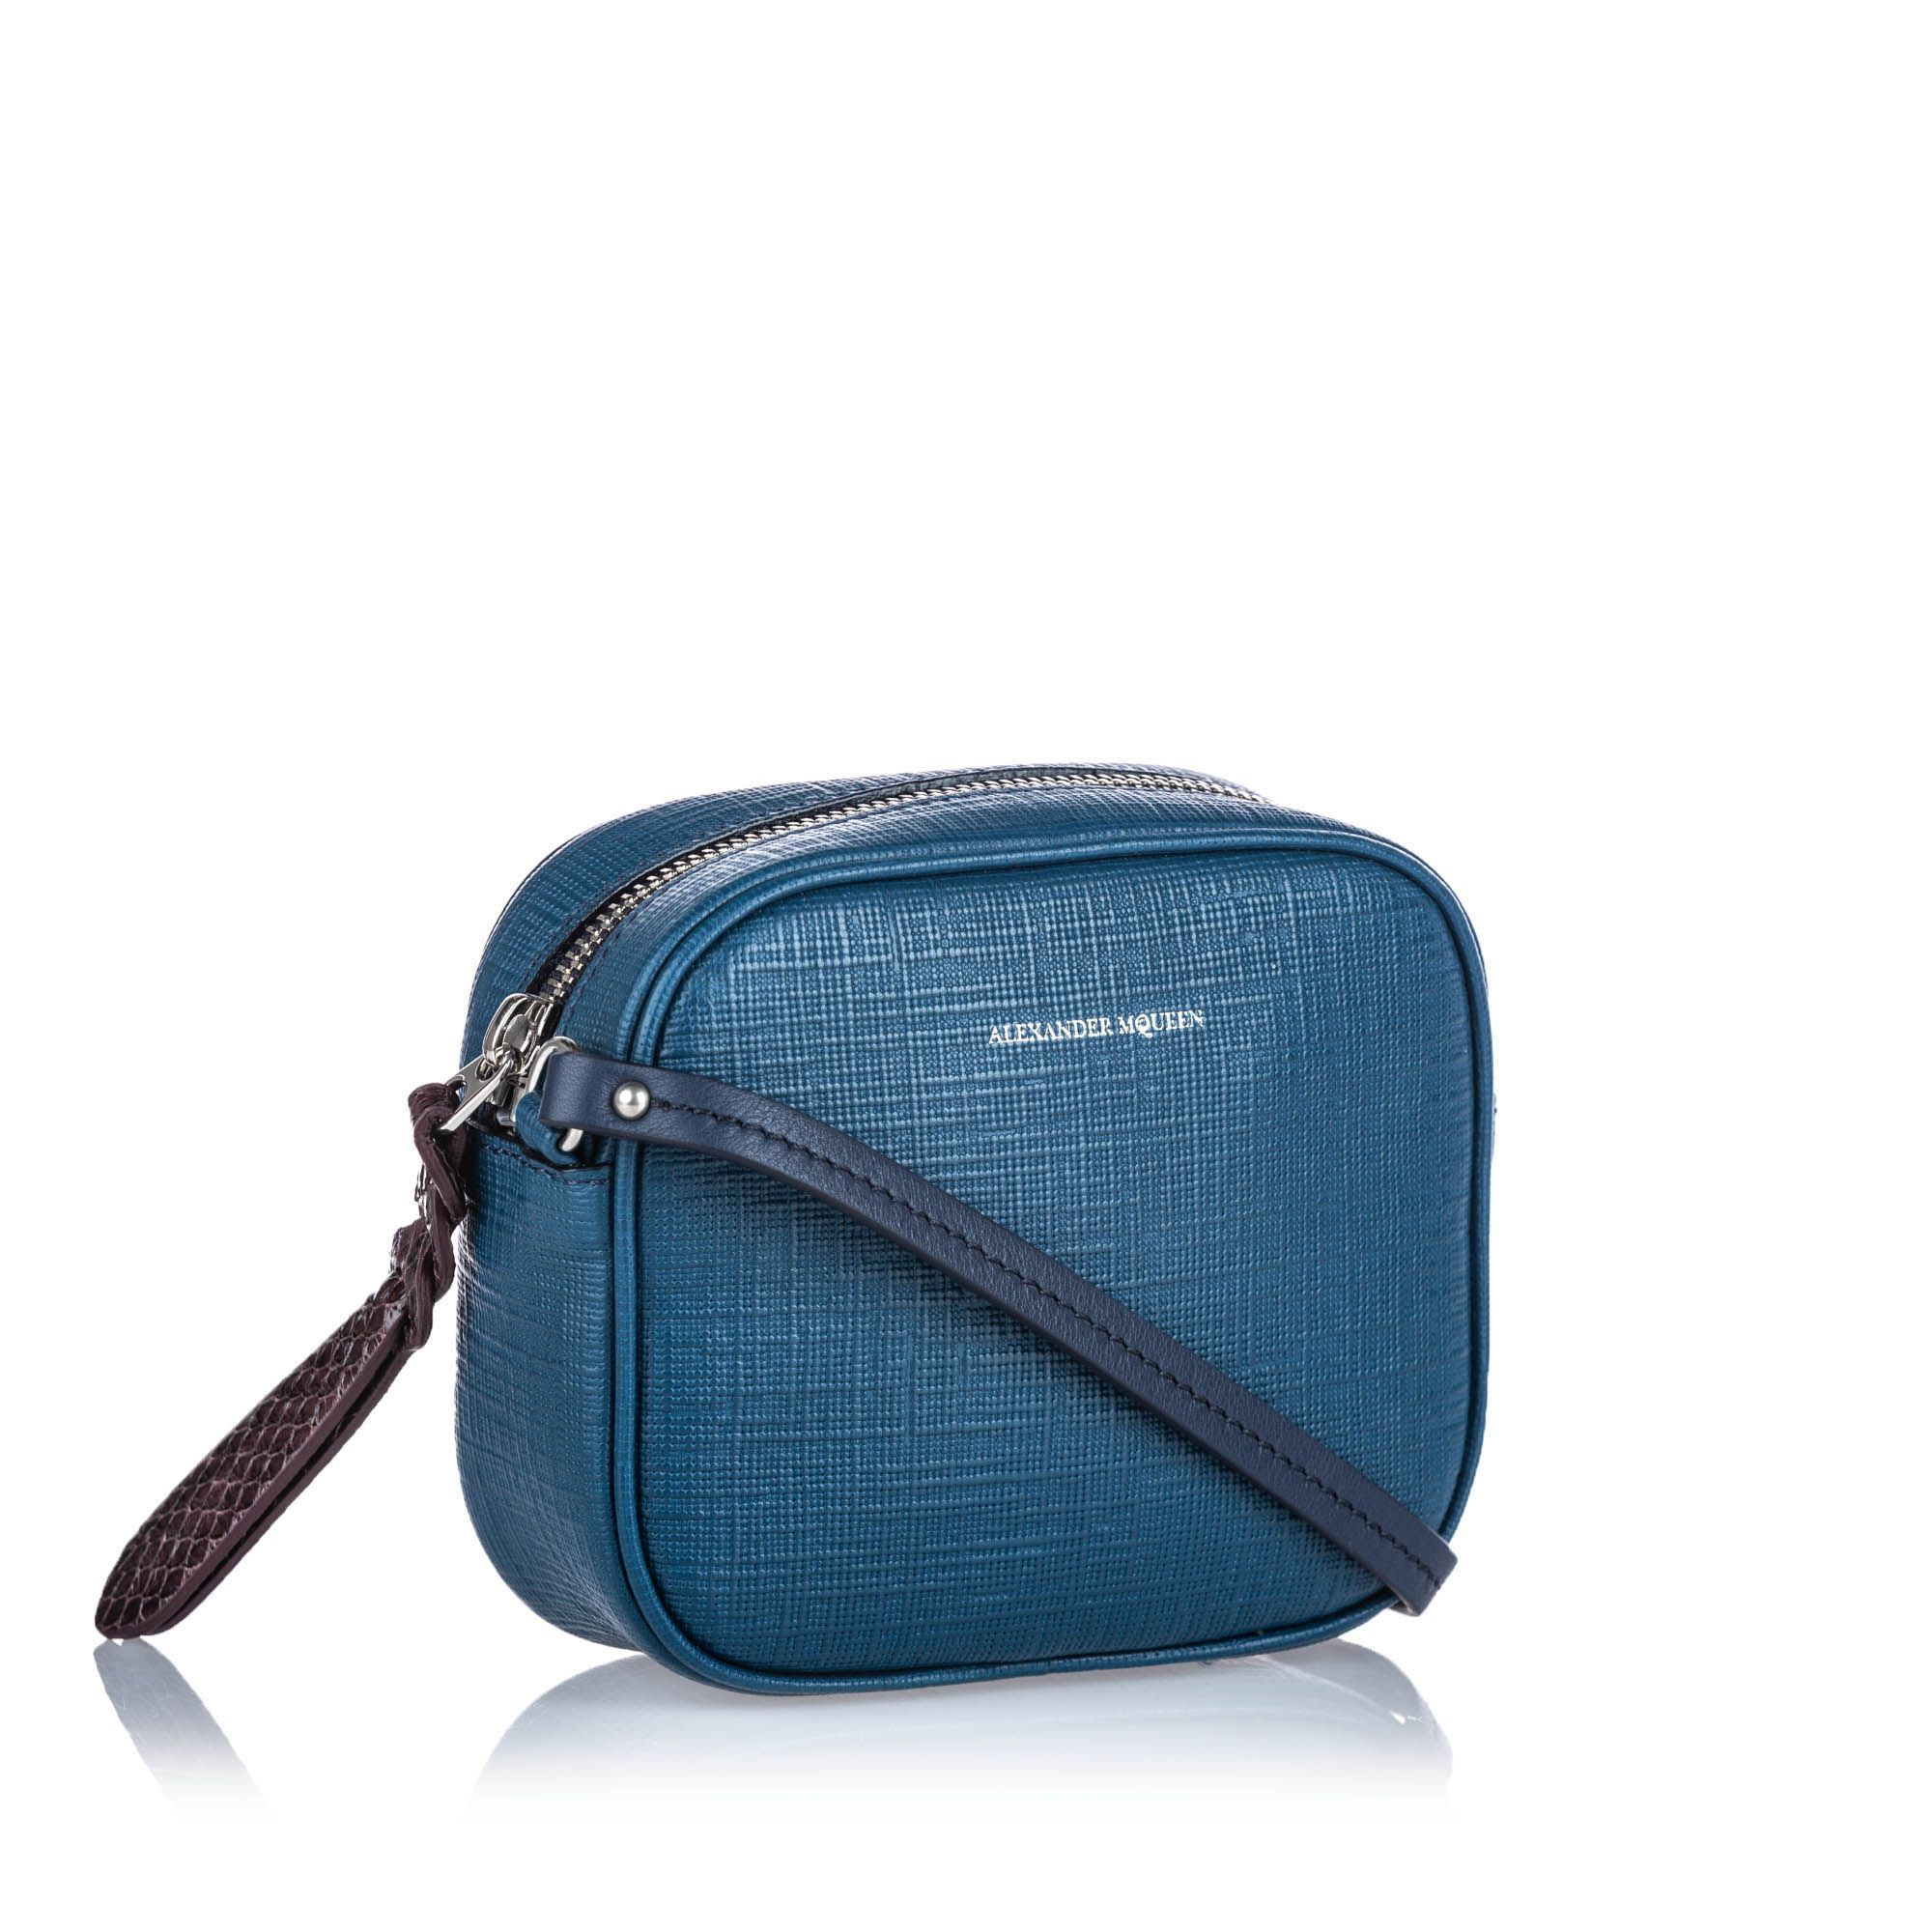 Vintage Alexander McQueen Mini Camera Bag Blue